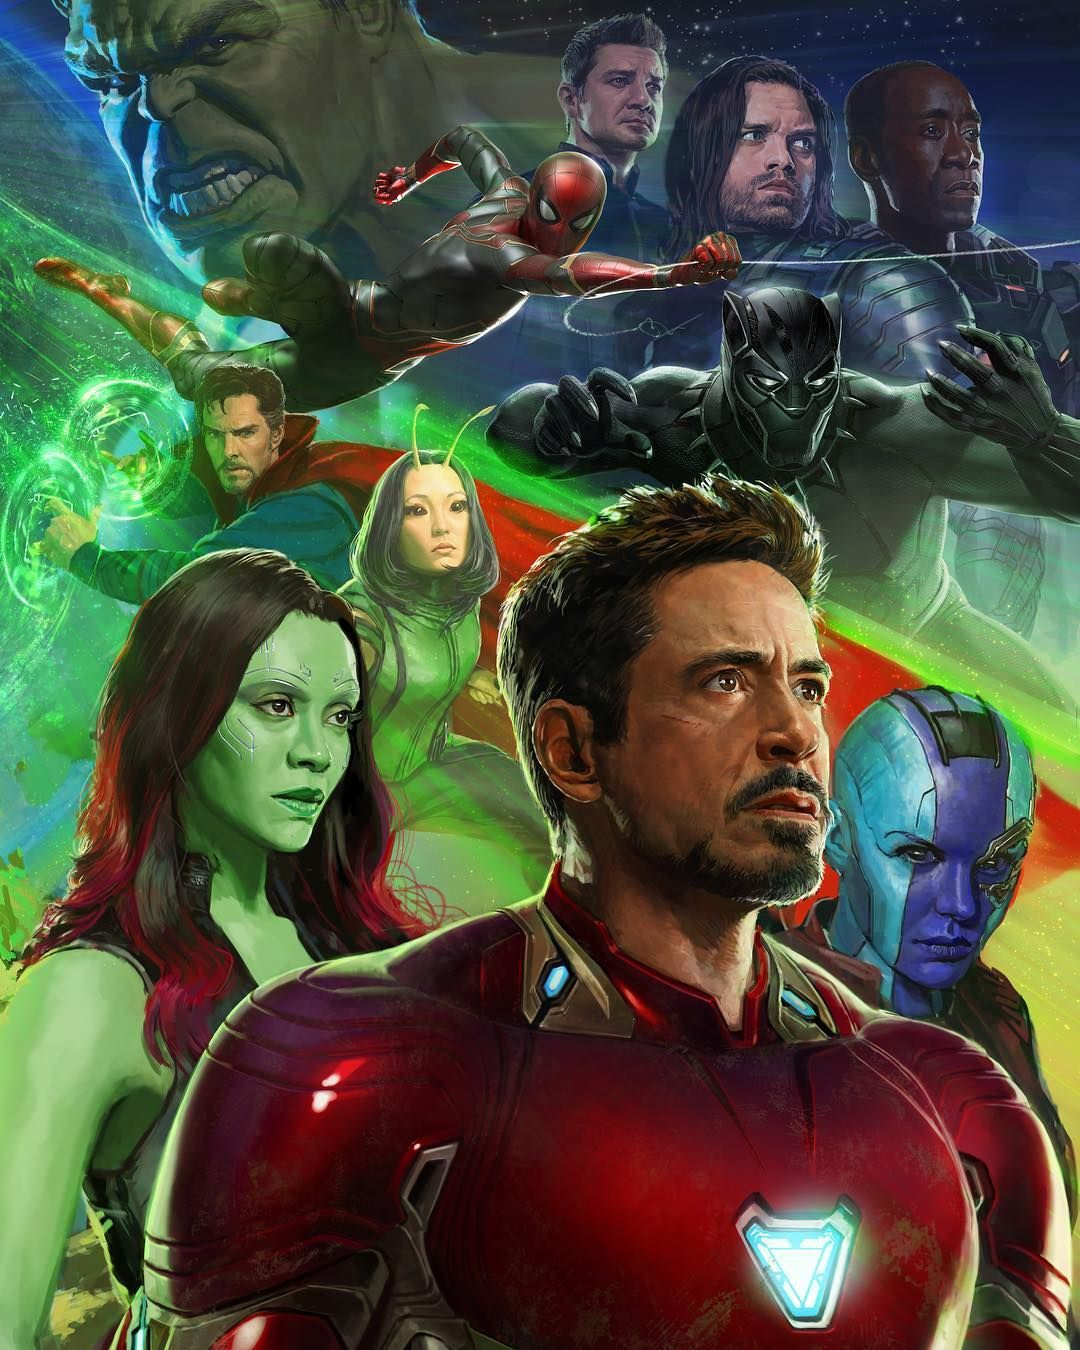 Avengers Infinity War Comic Con Poster Released Features The